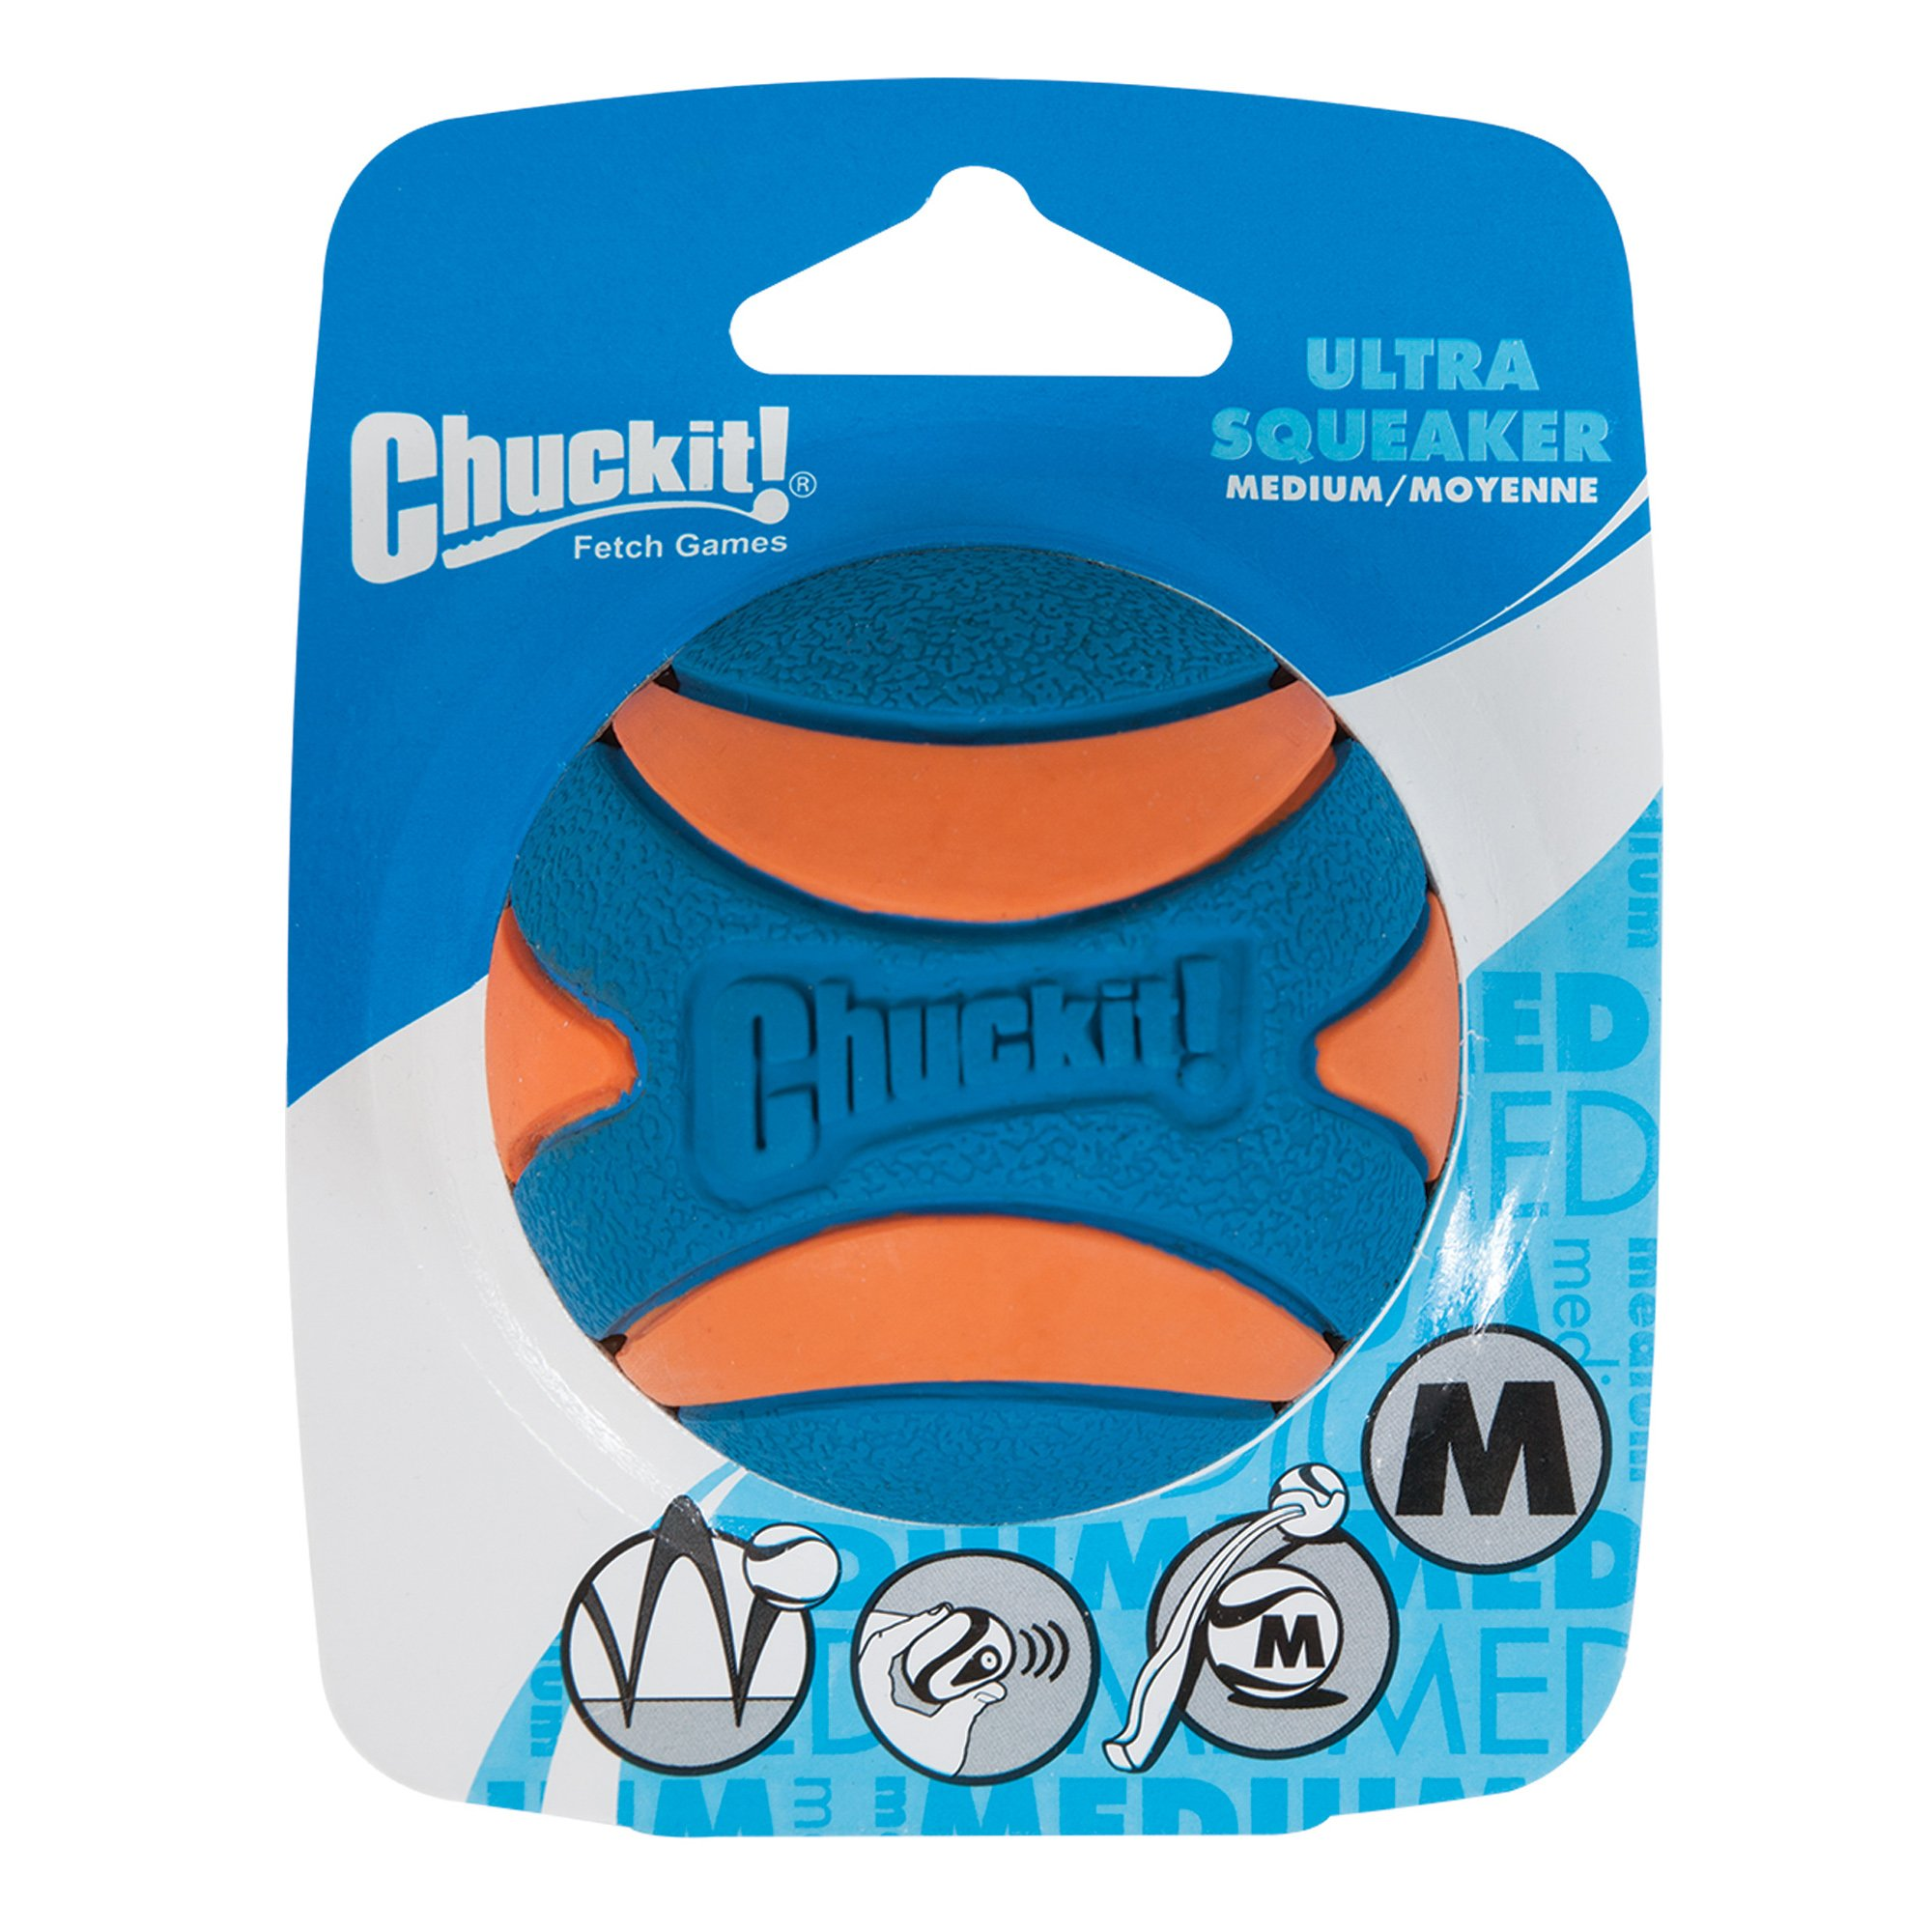 Chuckit Medium Squeaker Ball Dog Toy Petco